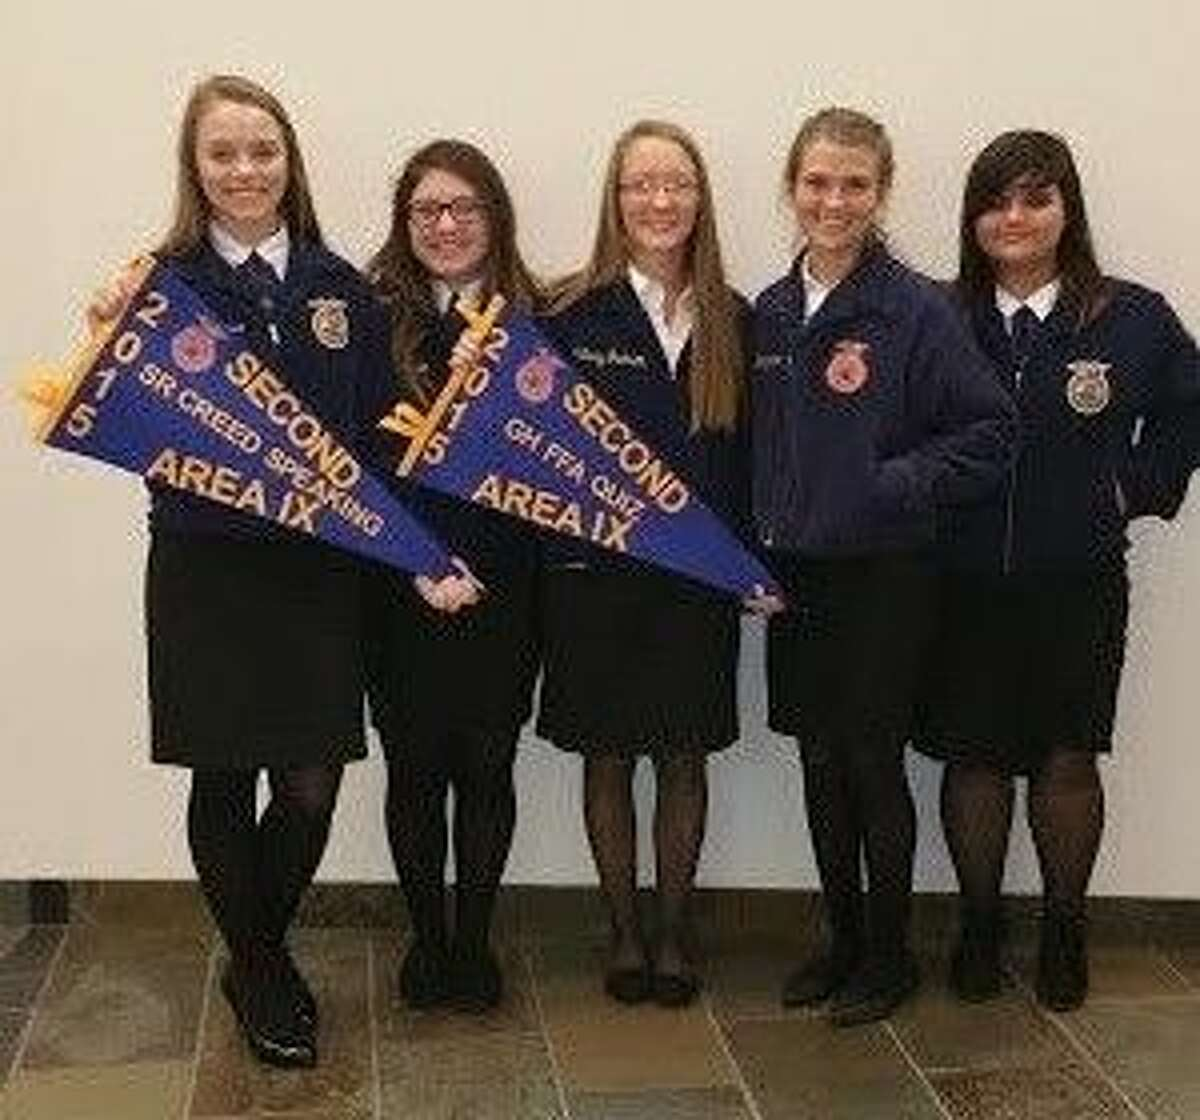 Tarkington FFA students competed in the Area IX LDE contest on Nov. 10. Some of the students will now advance to the State contest on Dec. 4-5. Pictured left to right are Cheyenne Gamangasso, Adicin Morgan, Miranda Godkins and Caitlyn Stutts.